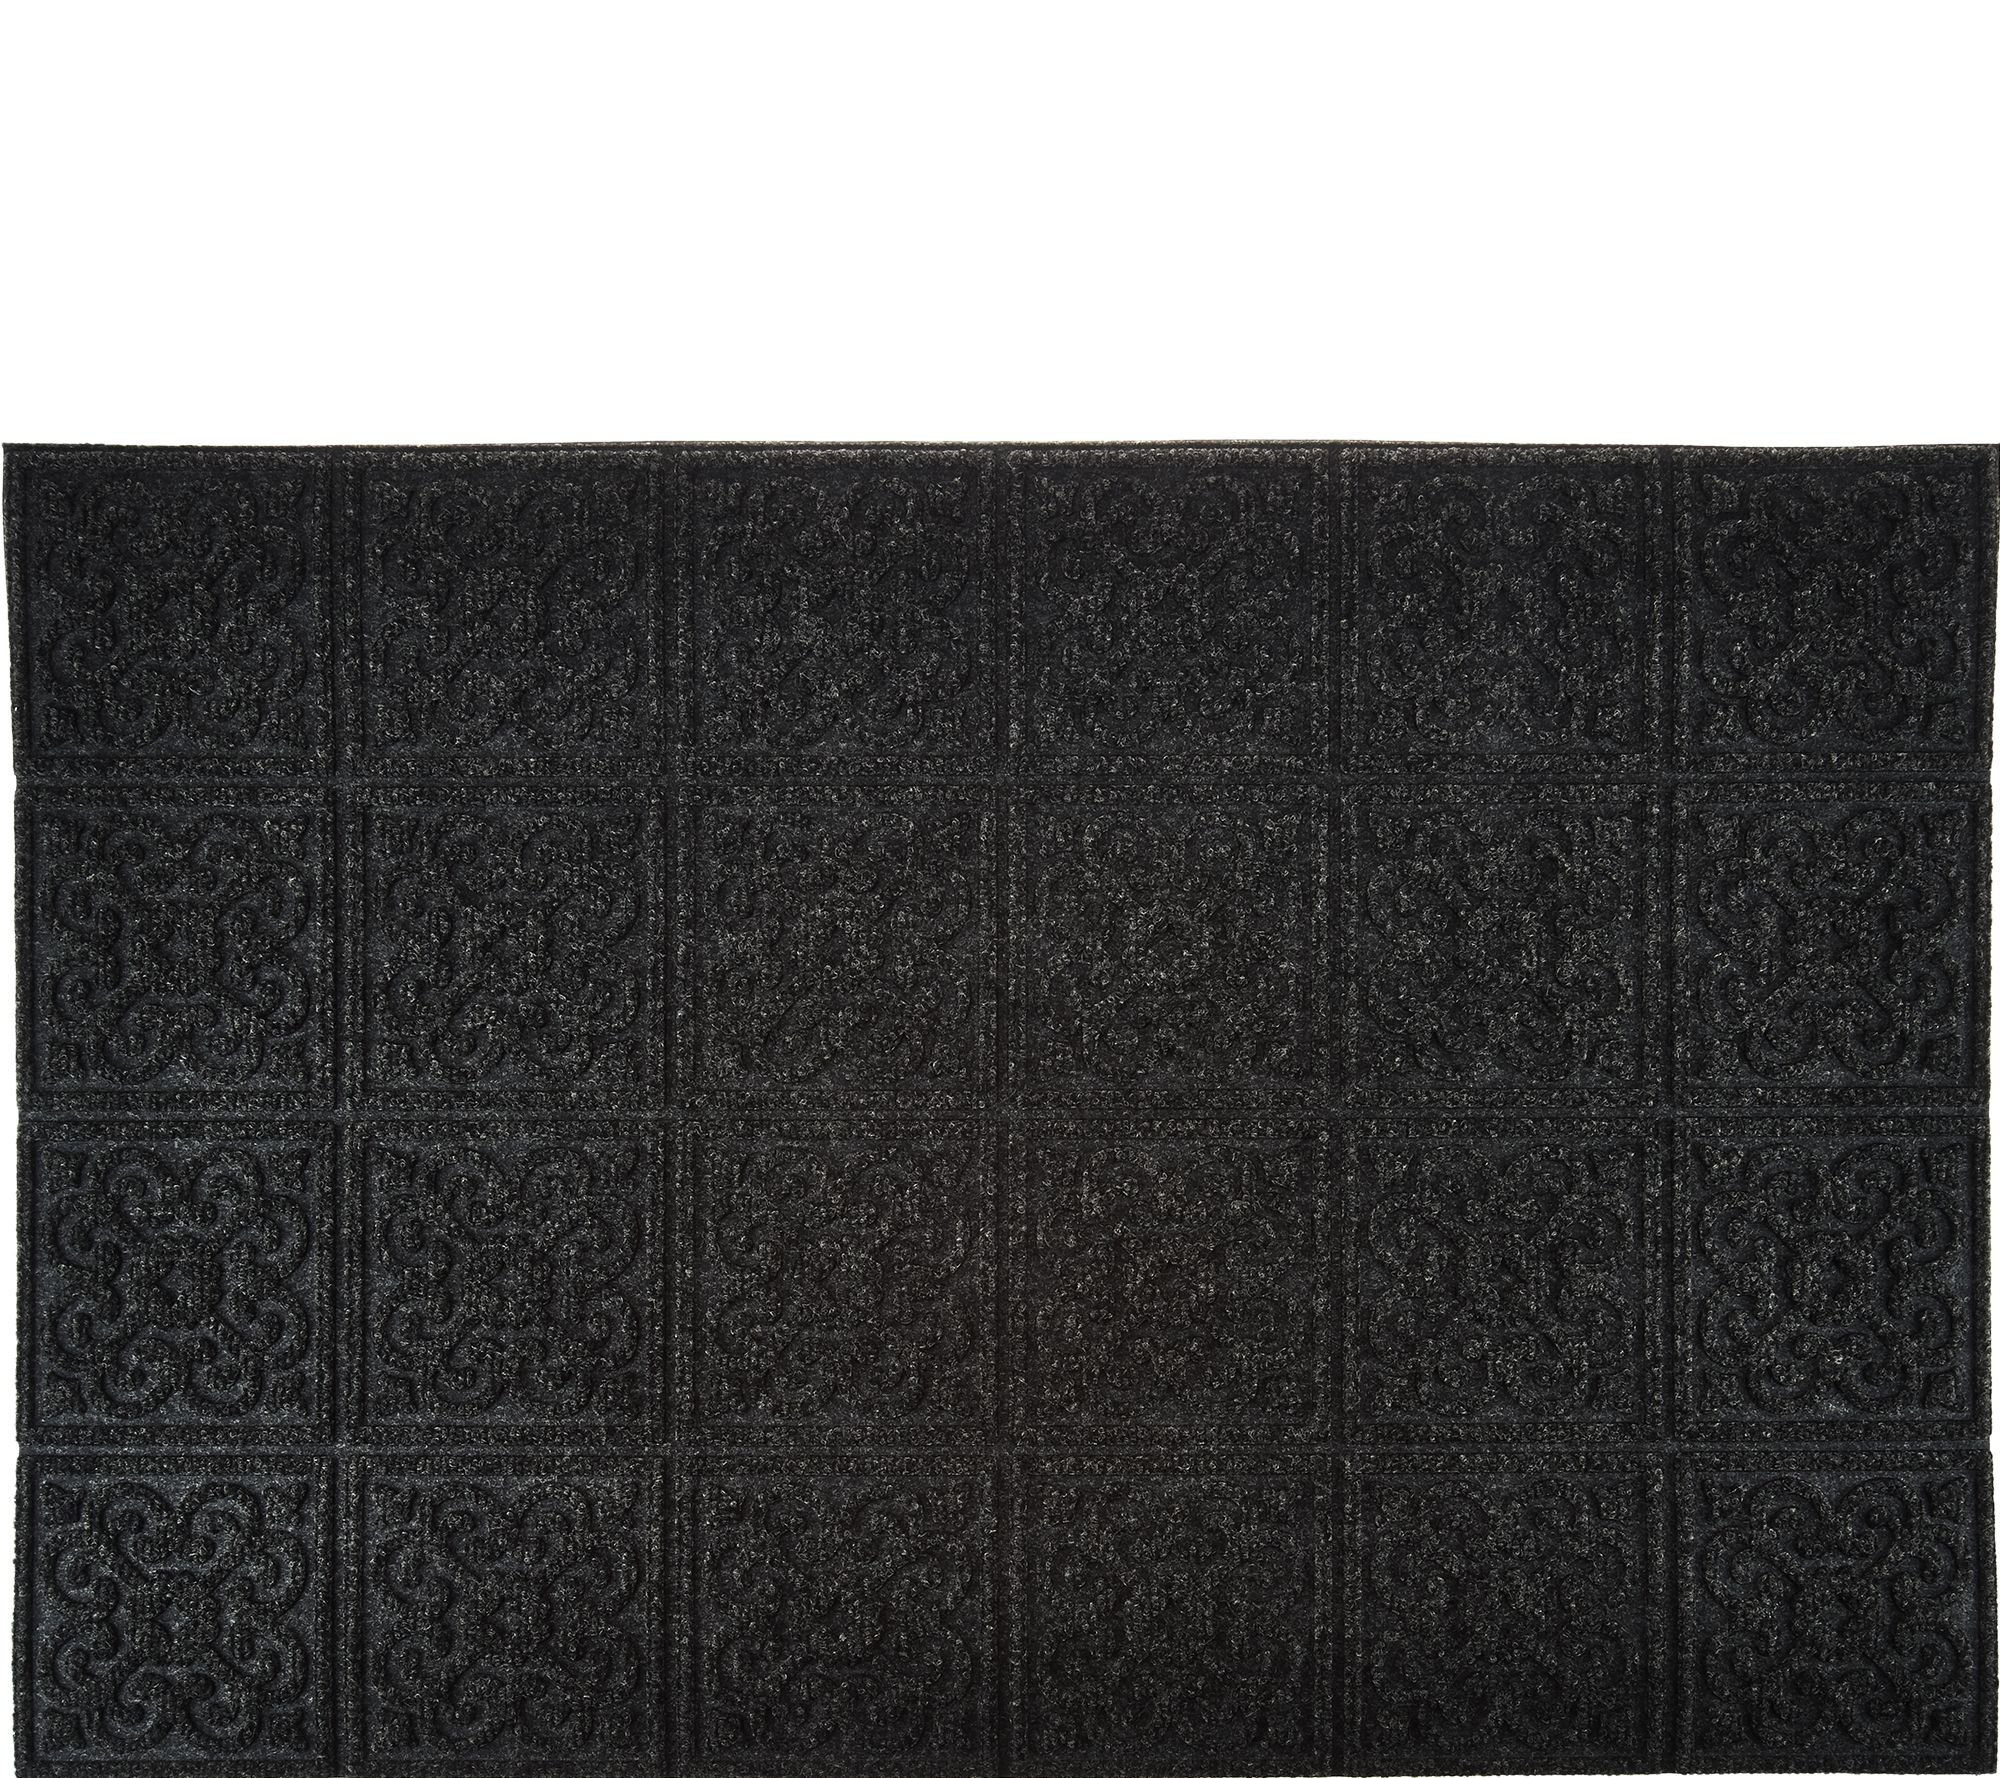 Aqua Hog 2u0027 X 3u0027 Indoor/Outdoor Door Mat With Rubber Backing   Page 1 U2014  QVC.com